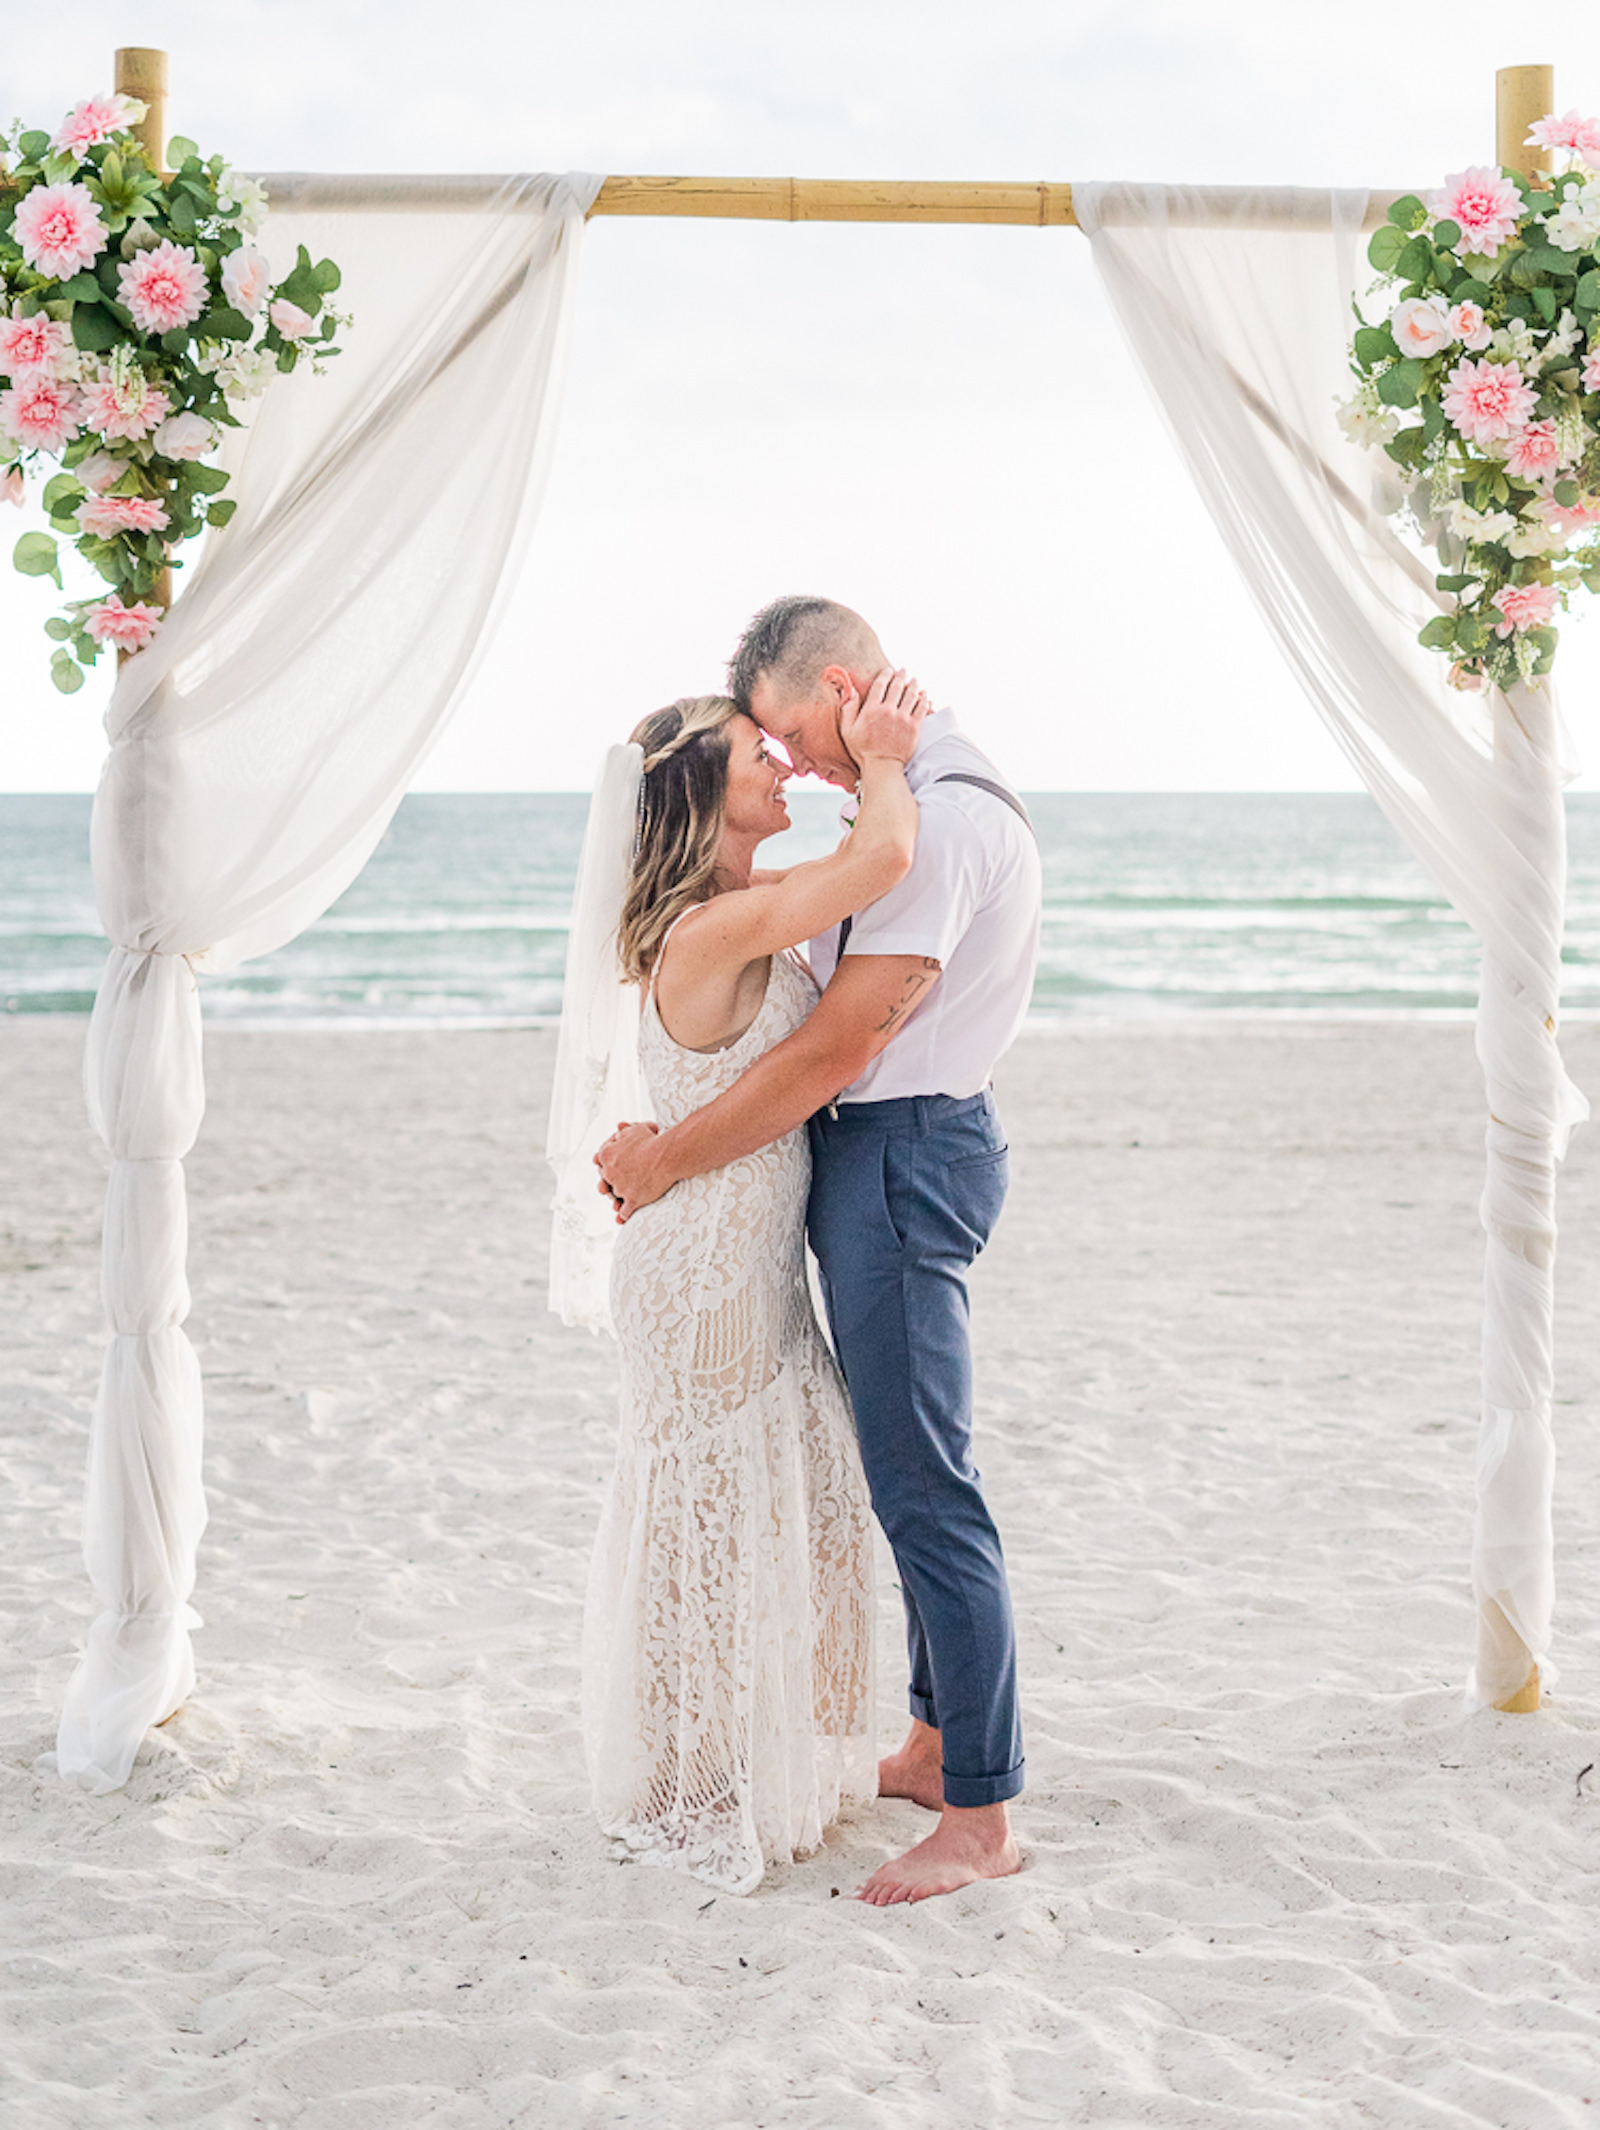 Treasure Island Wedding Archives   Marry Me Tampa Bay   Most ...